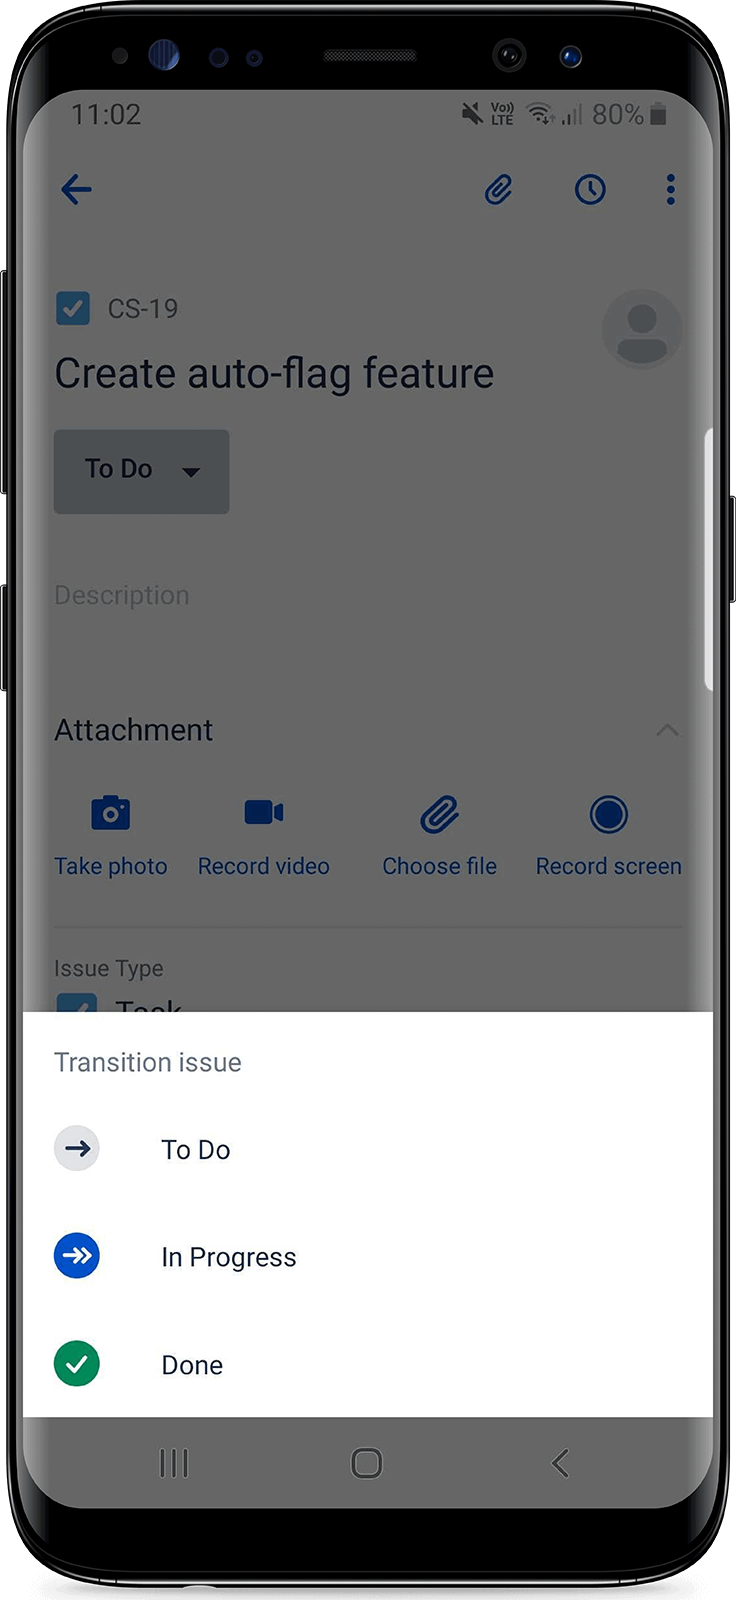 Jira cloud mobile app dropdown expanded